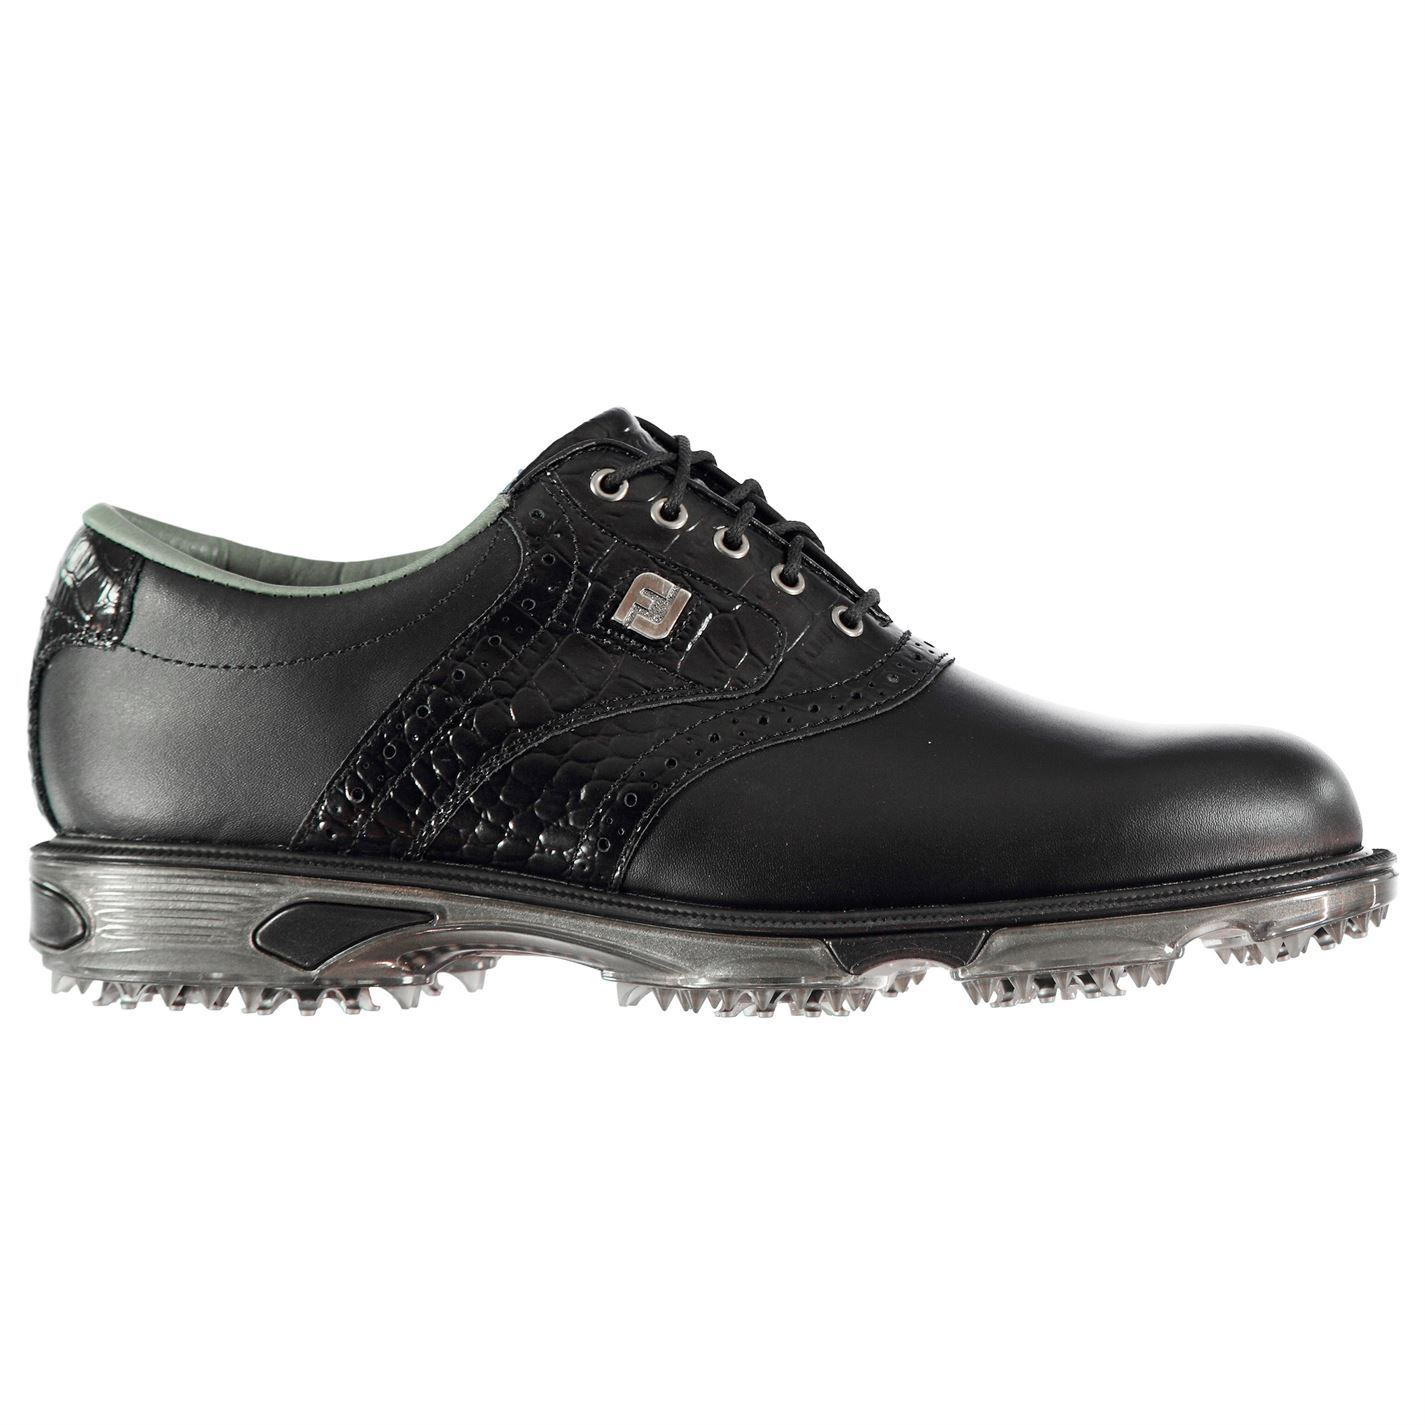 Footjoy-DryJoys-Tour-Golf-Shoes-Mens-Spikes-Footwear thumbnail 9